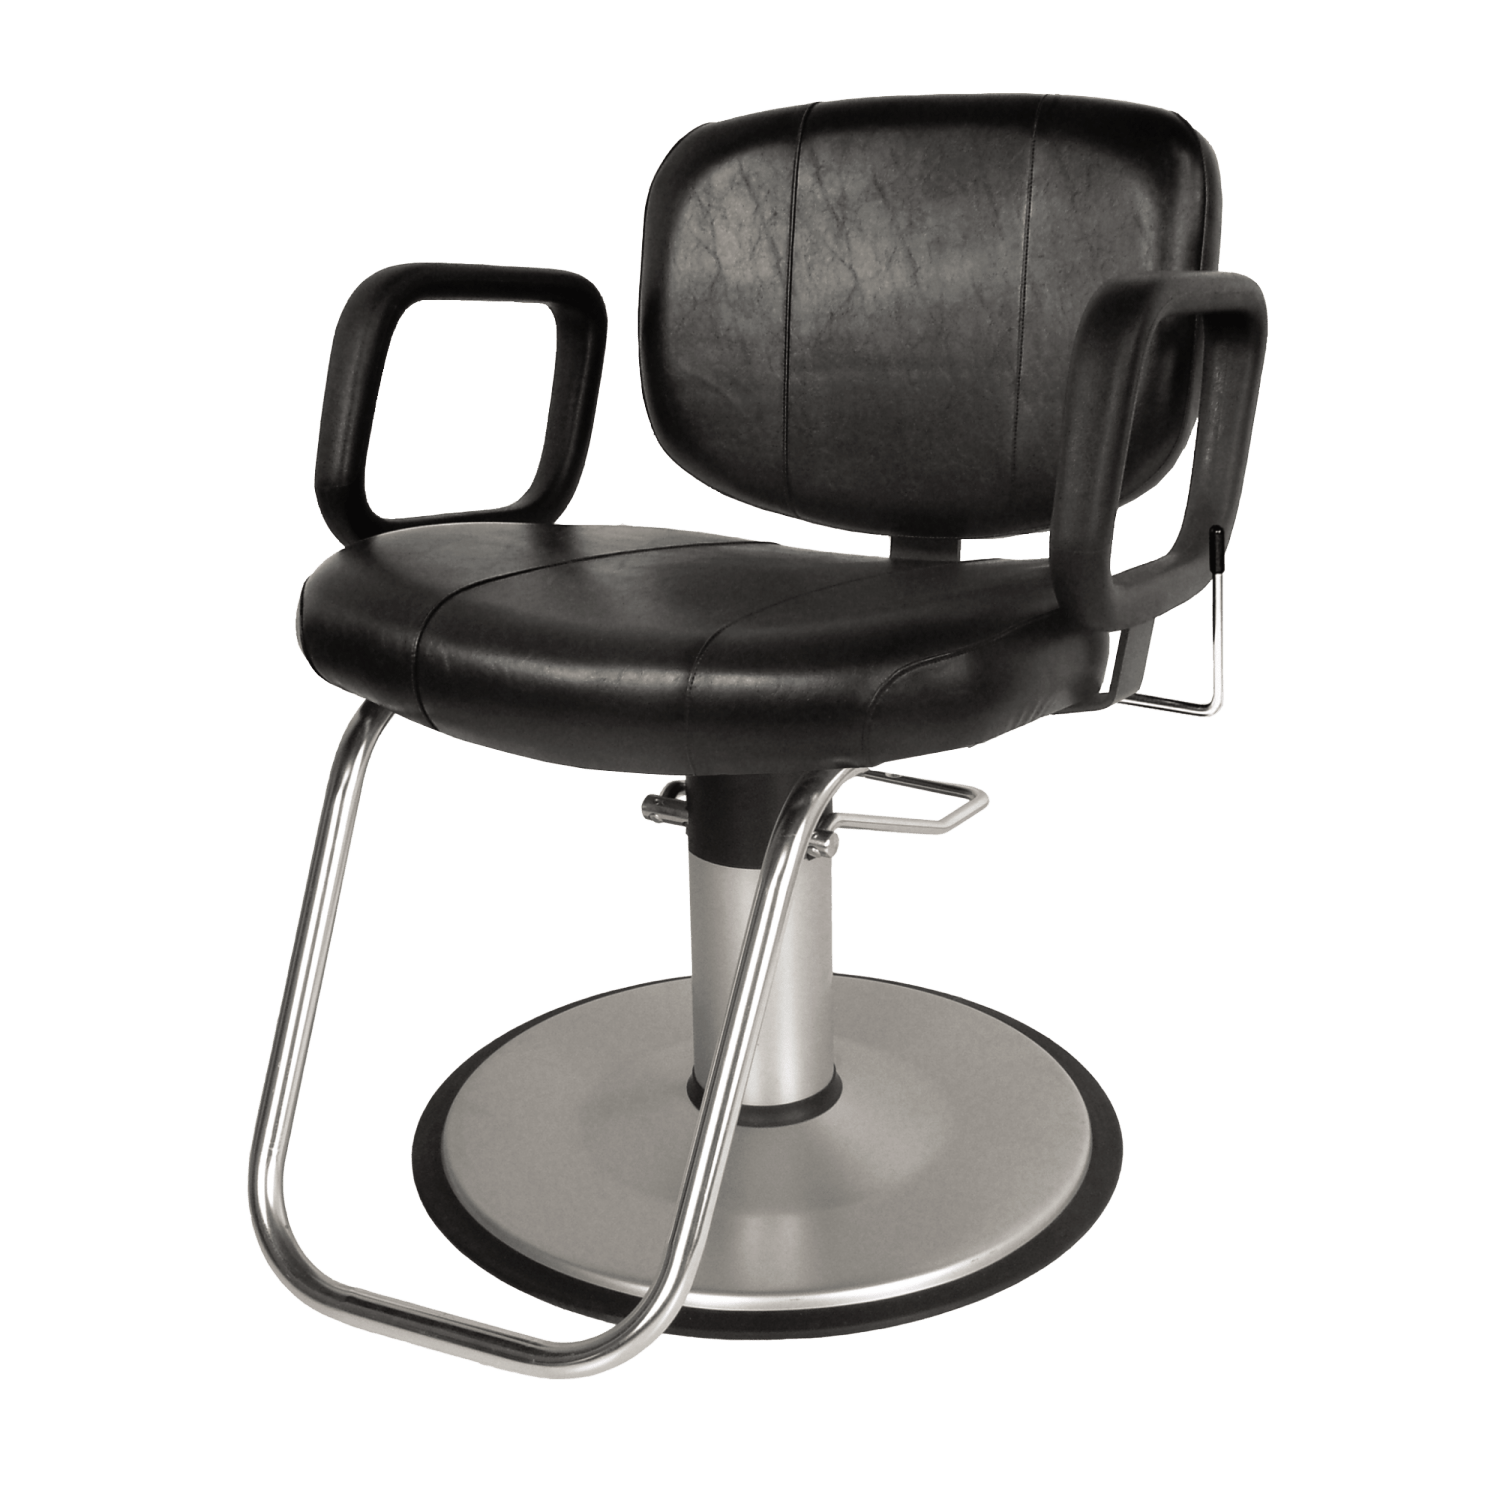 Hydraulic Chairs Collins Cody Hydraulic All Purpose Chair